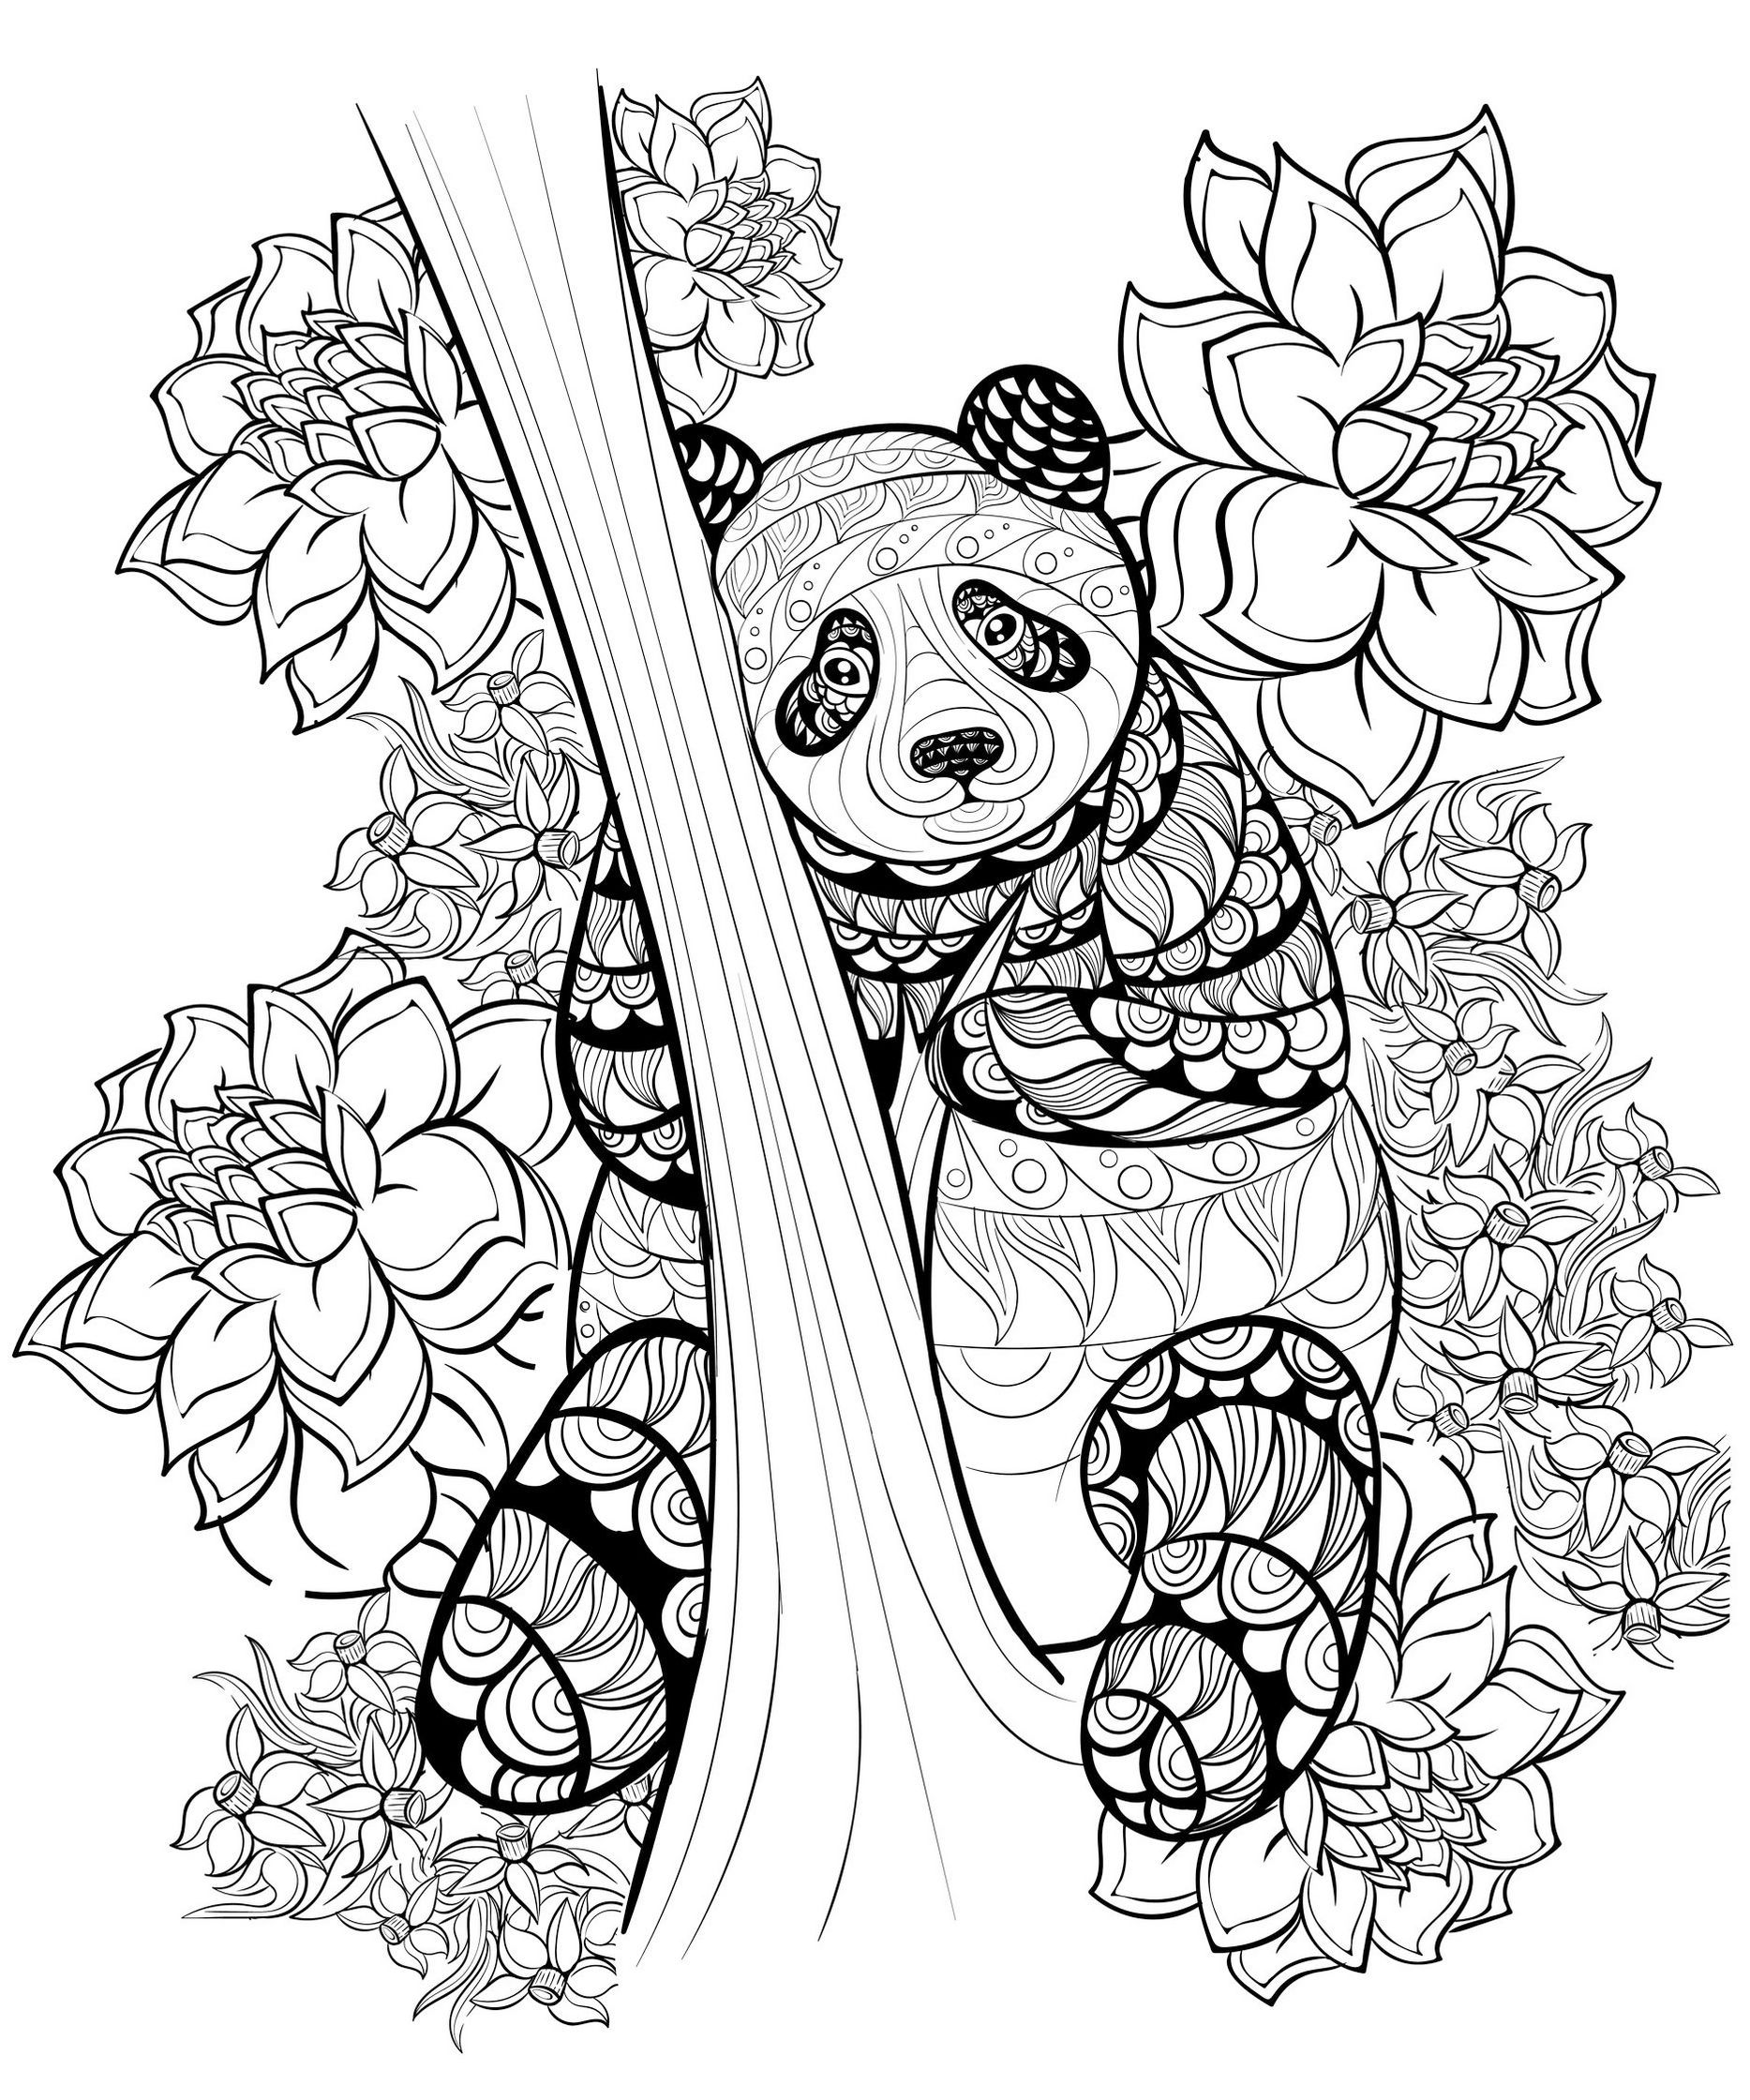 Zentangle Panda Coloring Sheet Printable